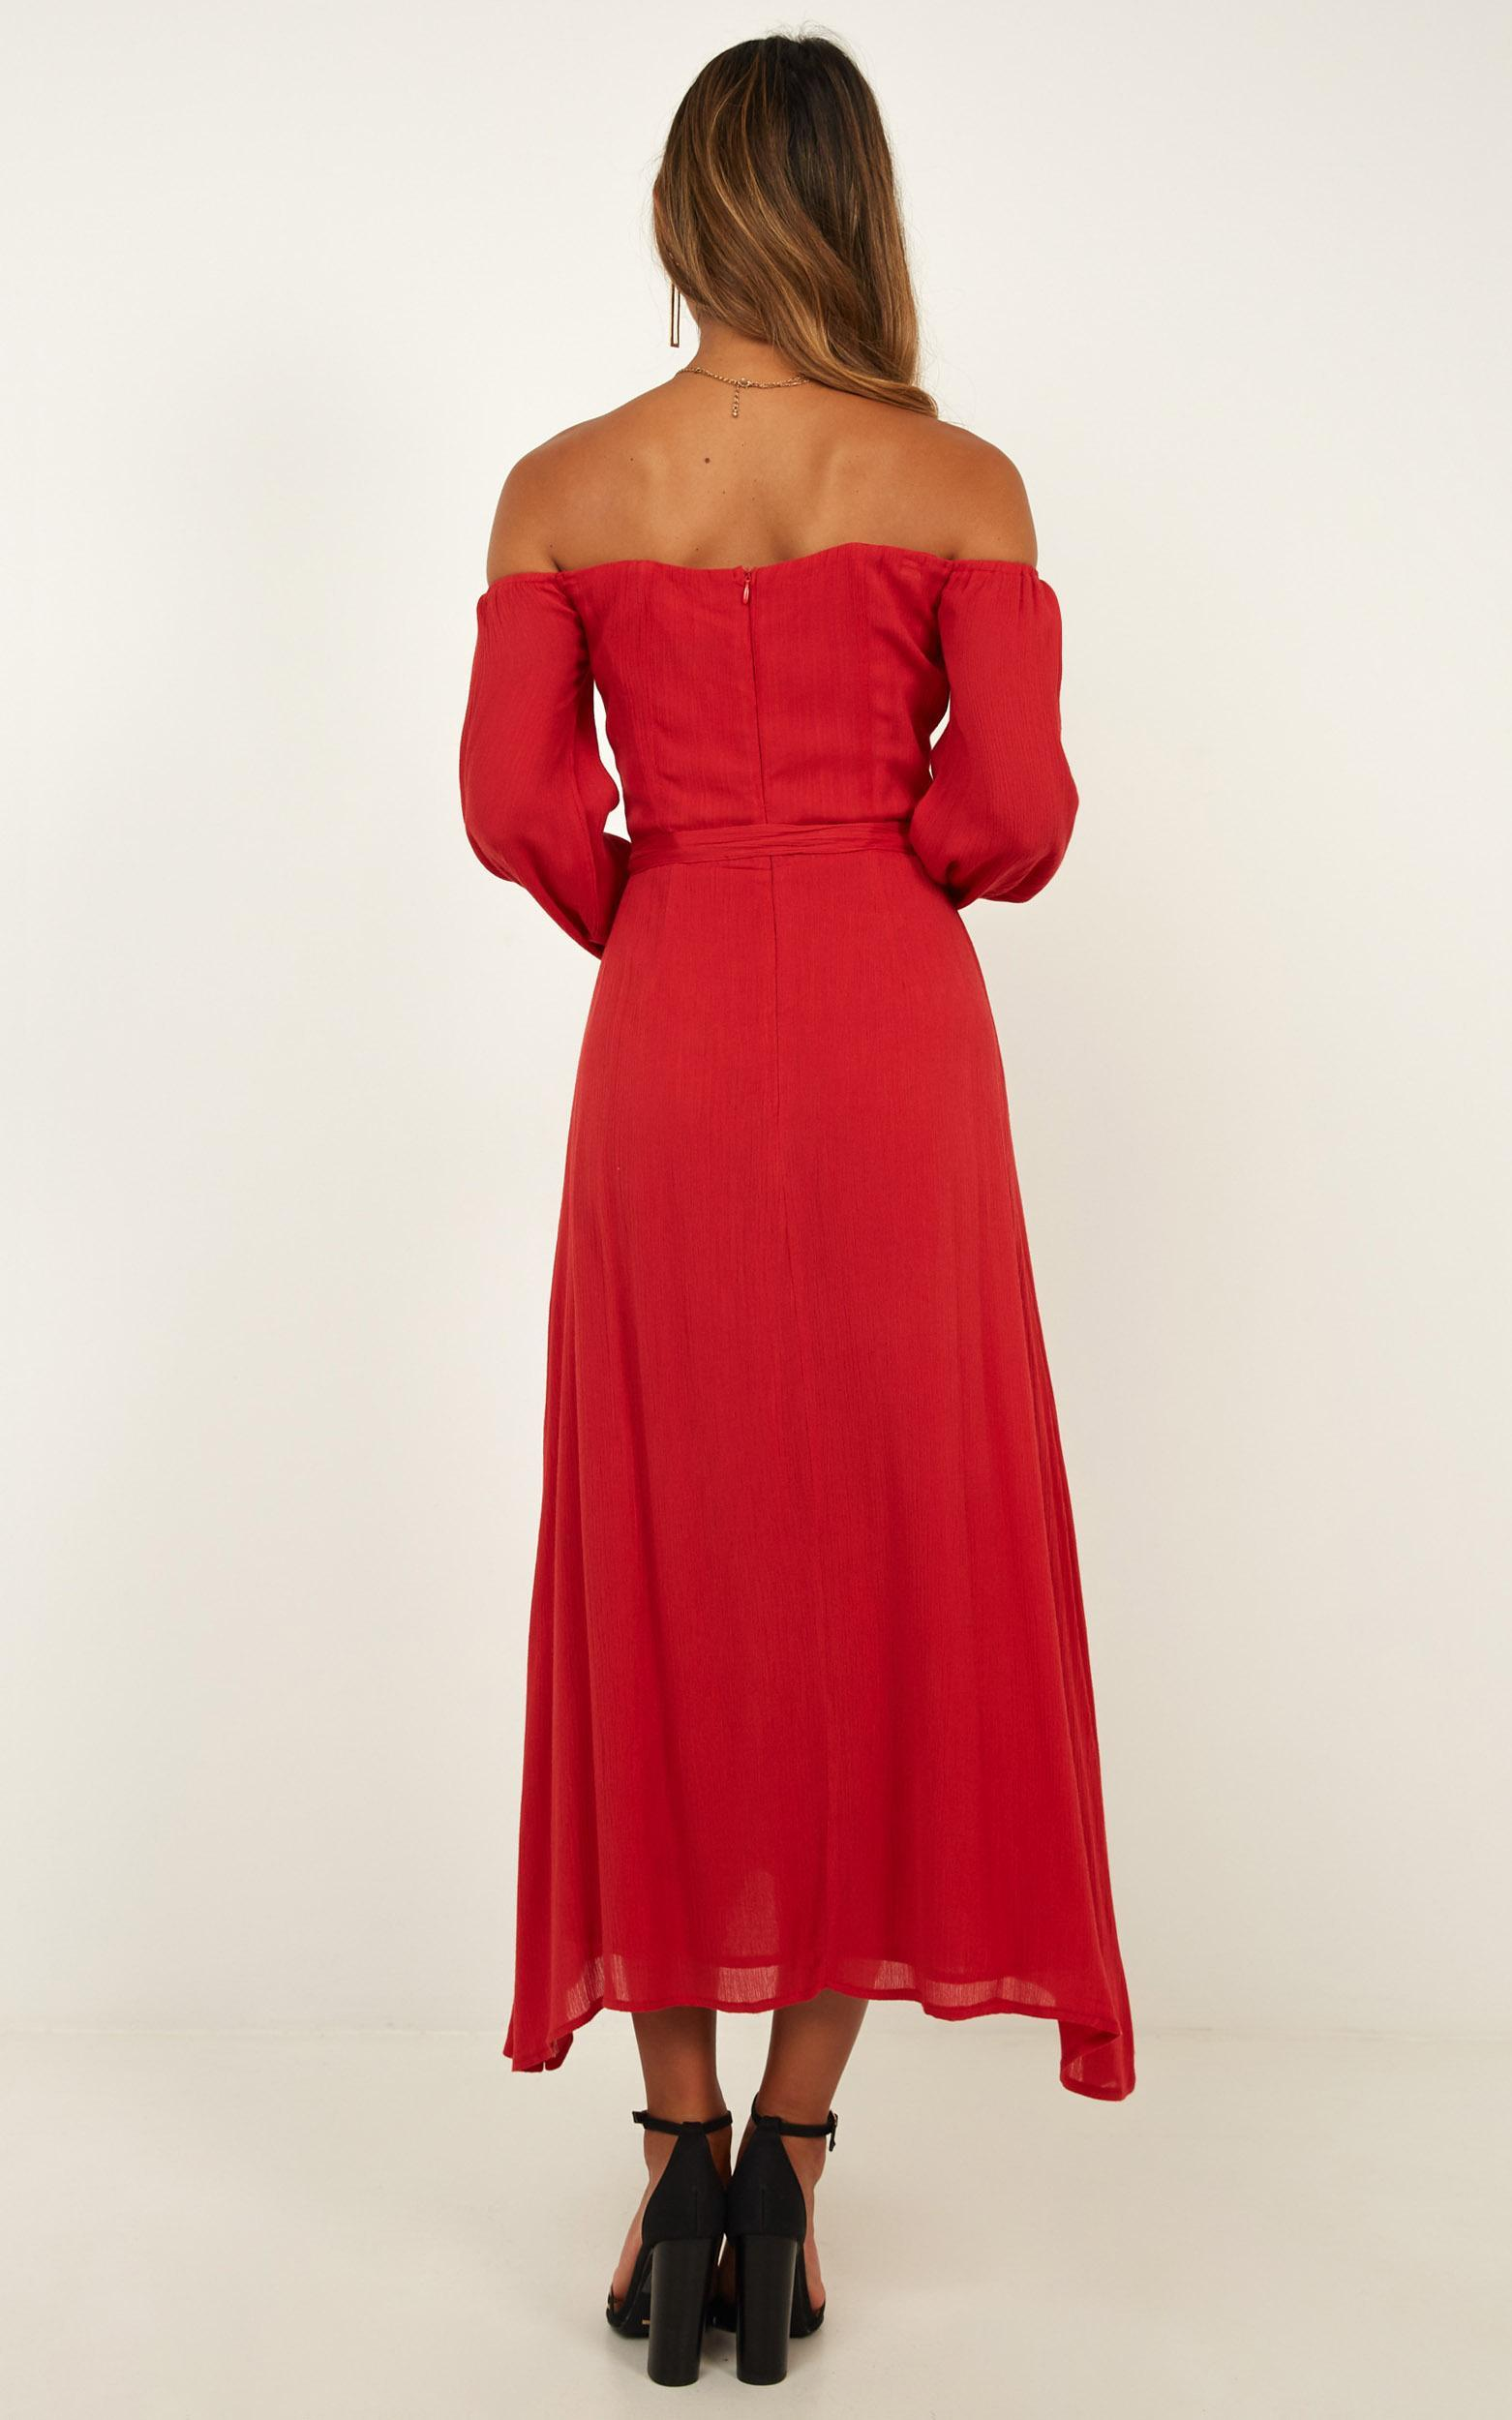 Sorrento Dreaming dress in red linen look - 20 (XXXXL), Red, hi-res image number null